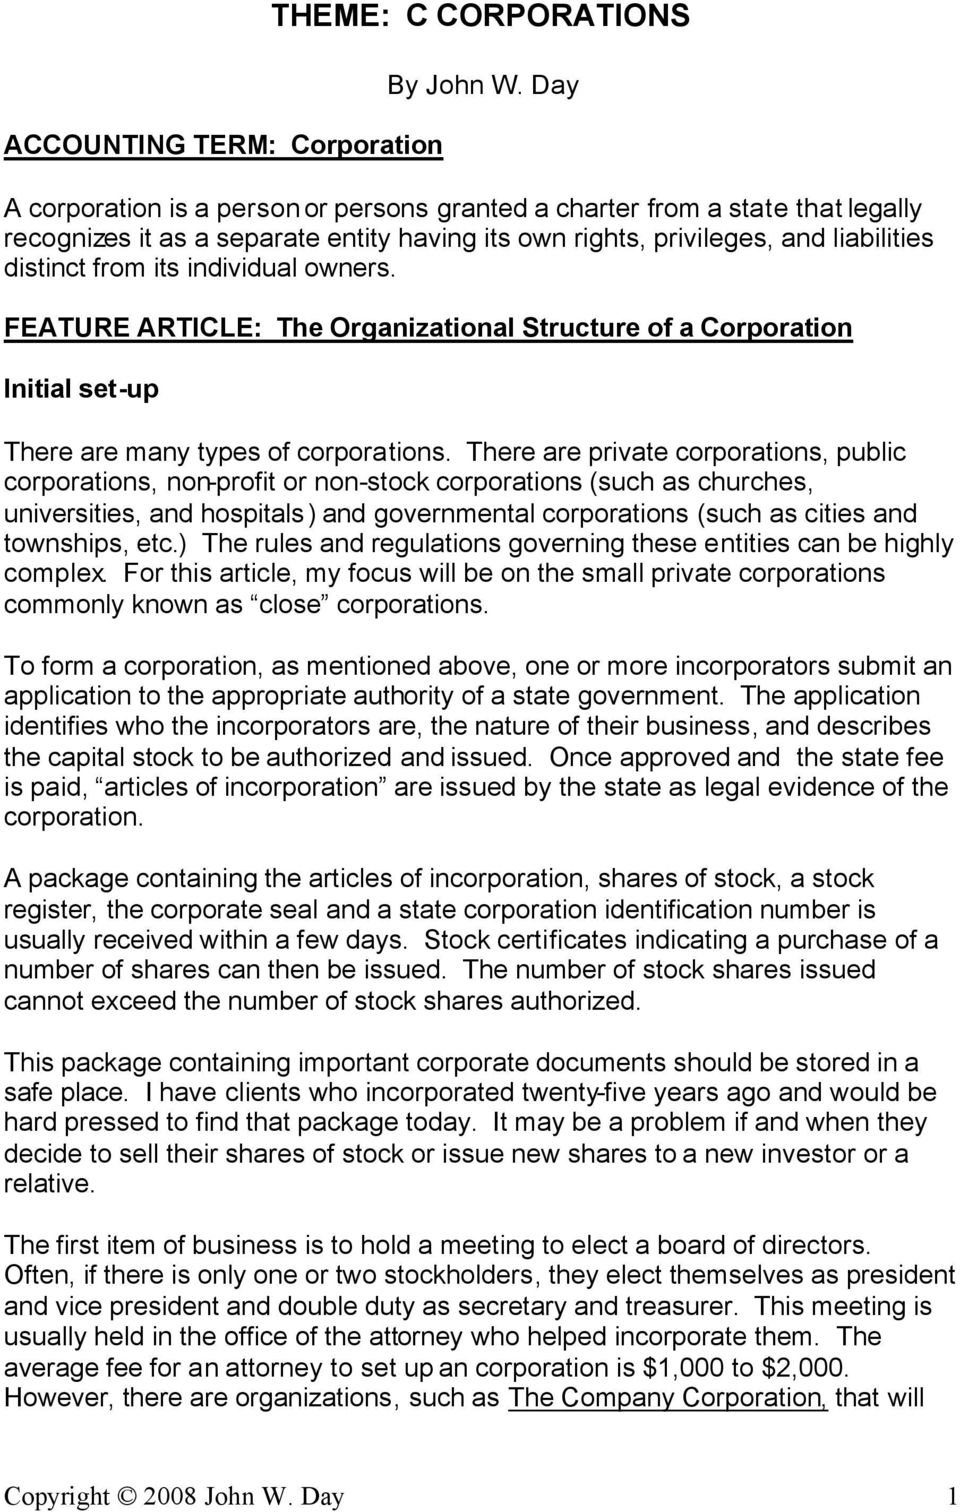 owners. FEATURE ARTICLE: The Organizational Structure of a Corporation Initial set-up There are many types of corporations.